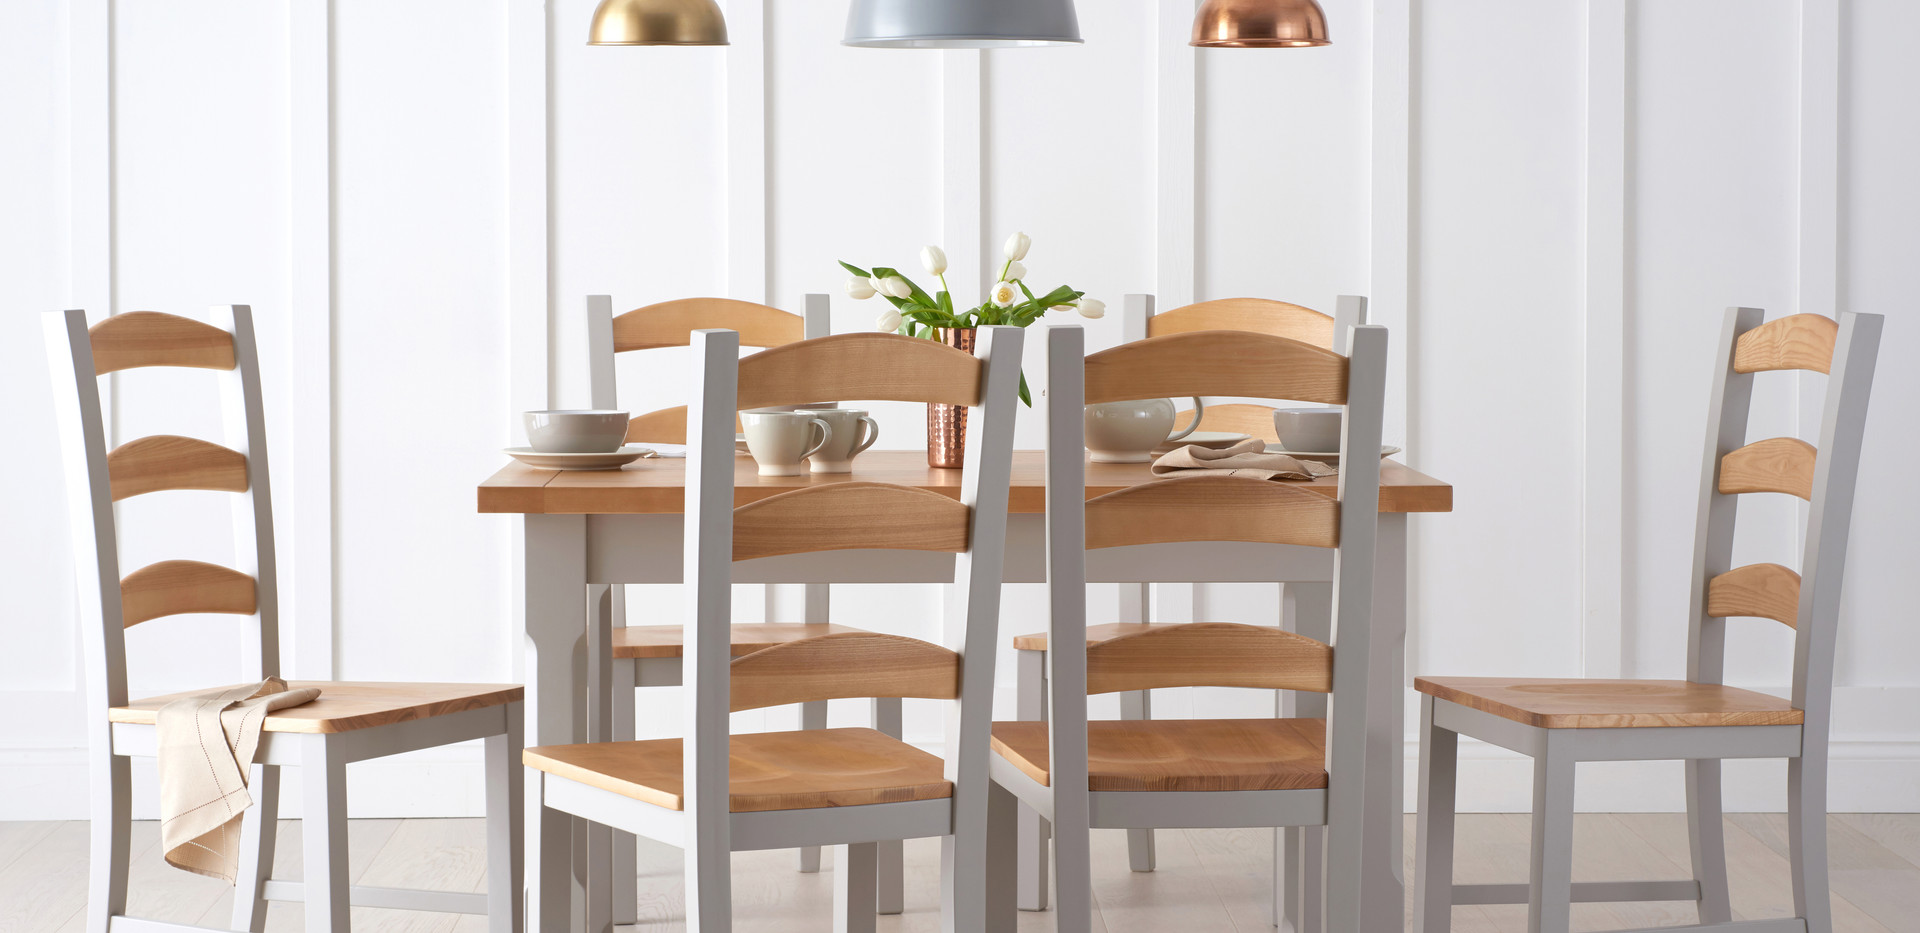 Breakfast dining studio shot for The Great Furniture Trading Company